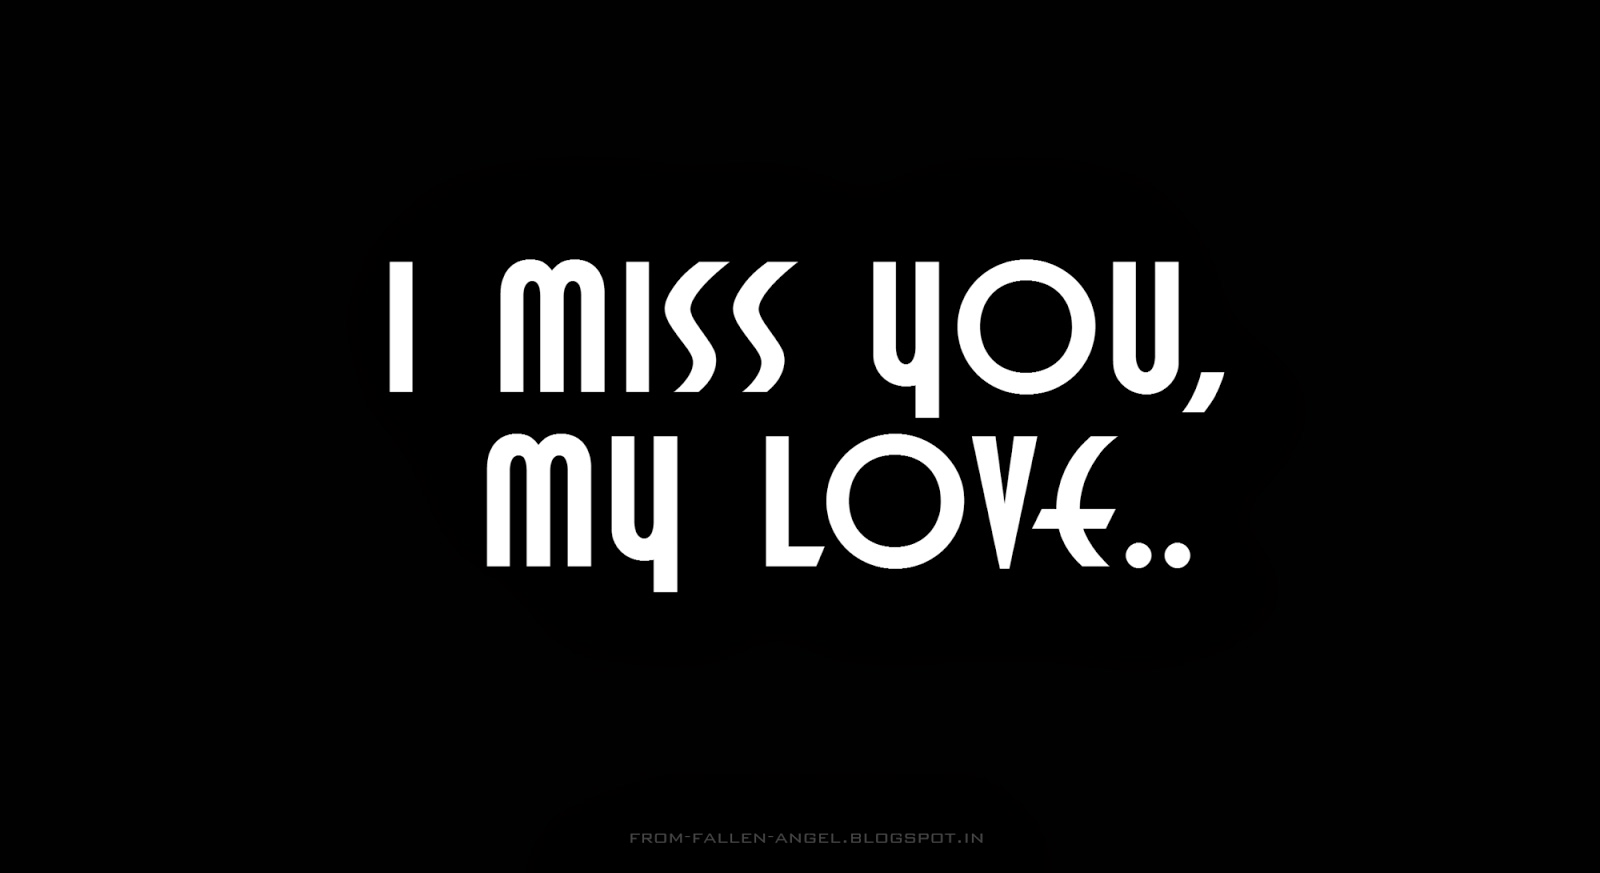 I miss you, my love